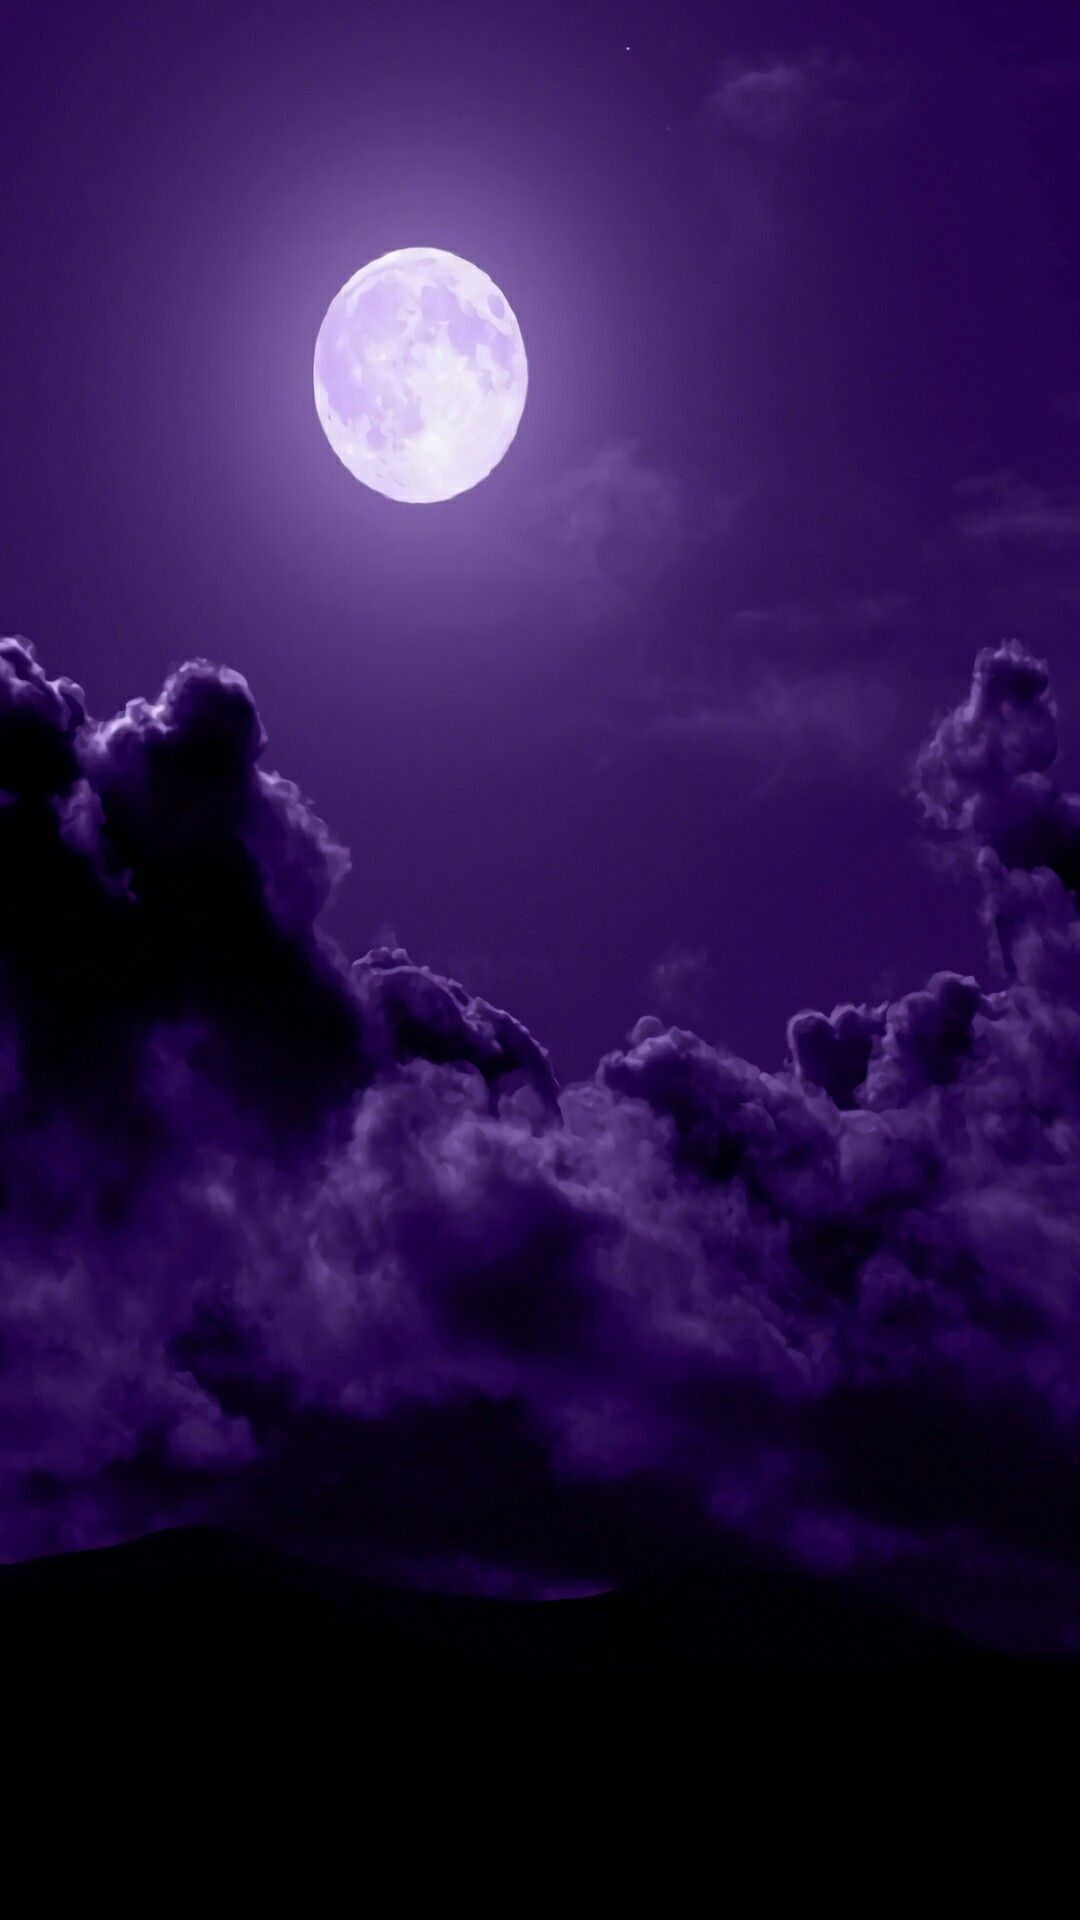 Dark purple sky with clouds and white moon - Dark purple sky with clouds and white moon Source ...